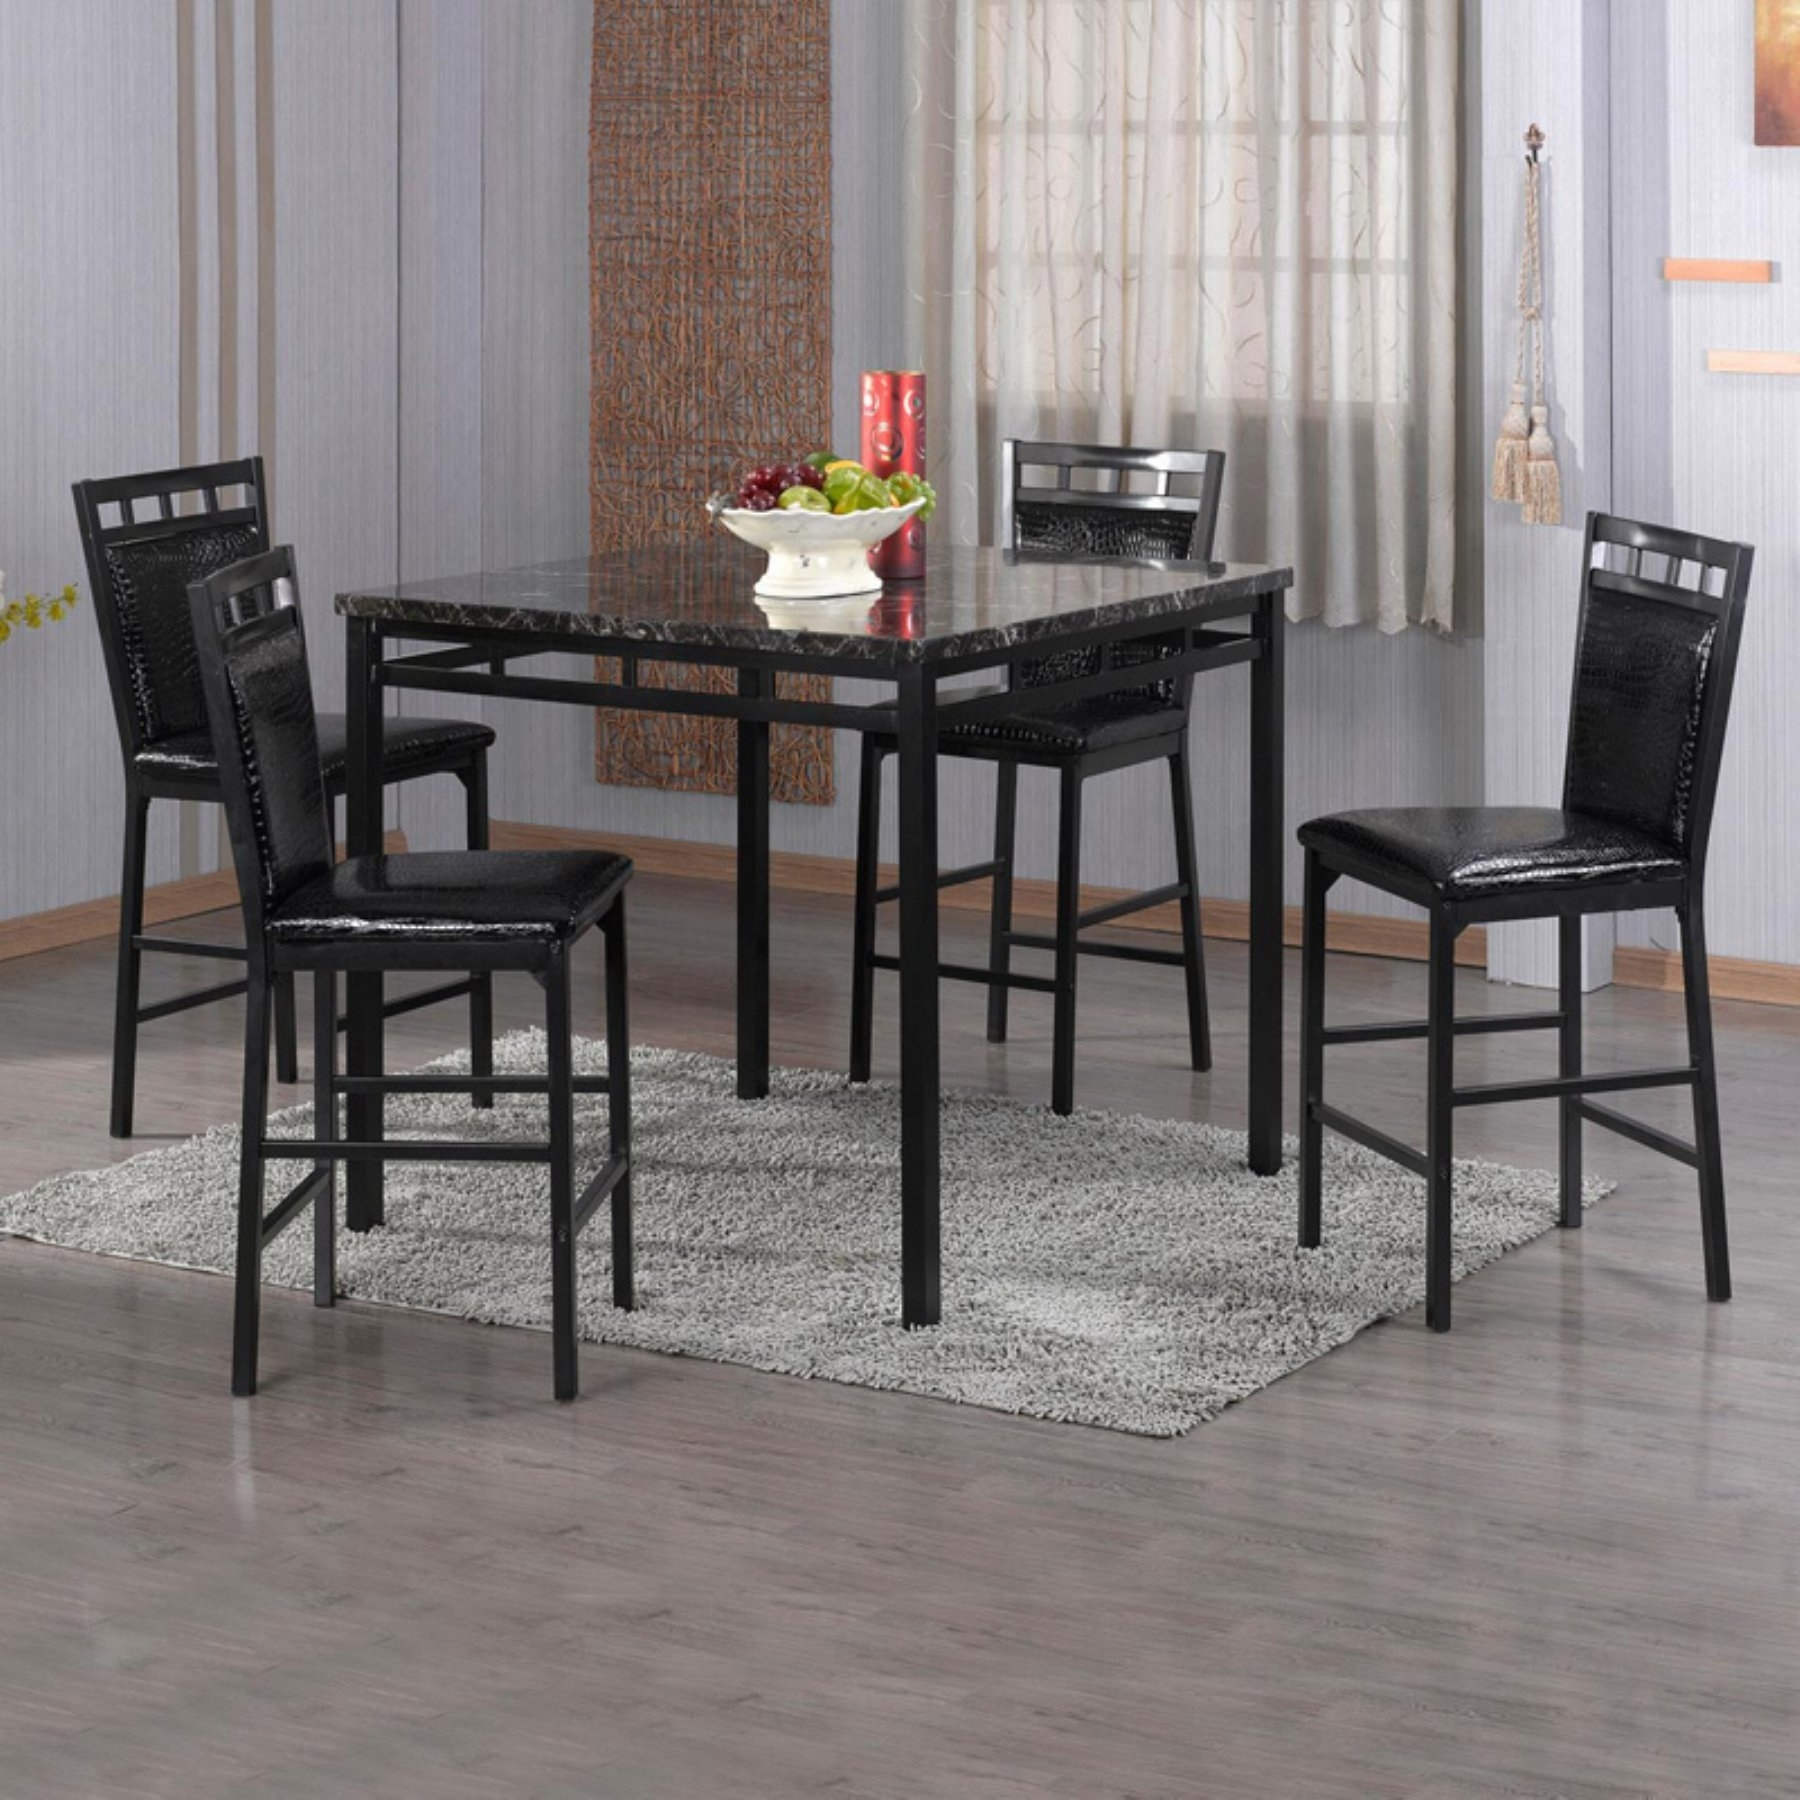 Home Source Industries 5 Piece Counter Height Dining Table Set In Within Most Recently Released Valencia 3 Piece Counter Sets With Bench (Image 7 of 20)